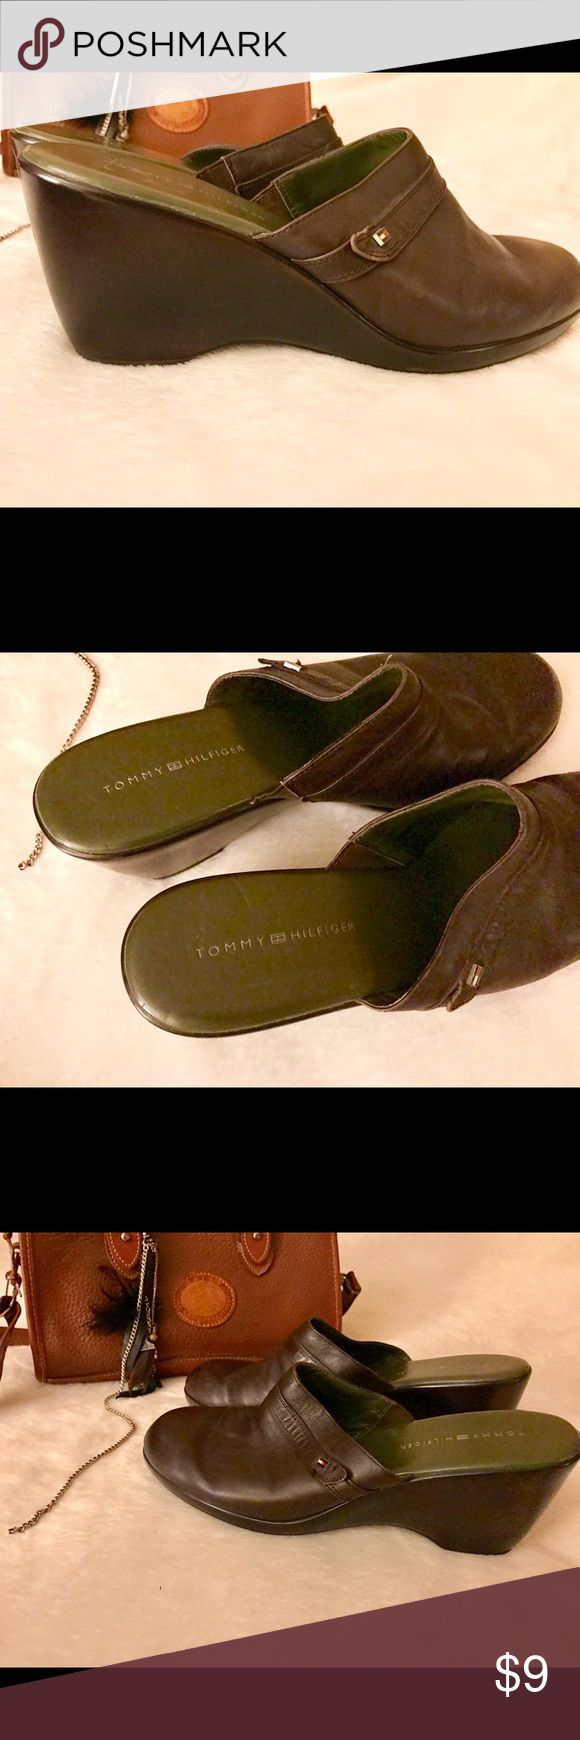 Tommy Hilfiger Gen Leather Clogs Wedges Heels Gen Leather amazing quality Tommy Hilfiger Open backed clogs/ heels. These are VERY comfortable :):):) Years of life left in these shoes!!! Make me an offer! Bundle and save!!! Size 10 markings but fit more like a size9.5 😍❤️😘👌😜👍 Tommy Hilfiger Shoes